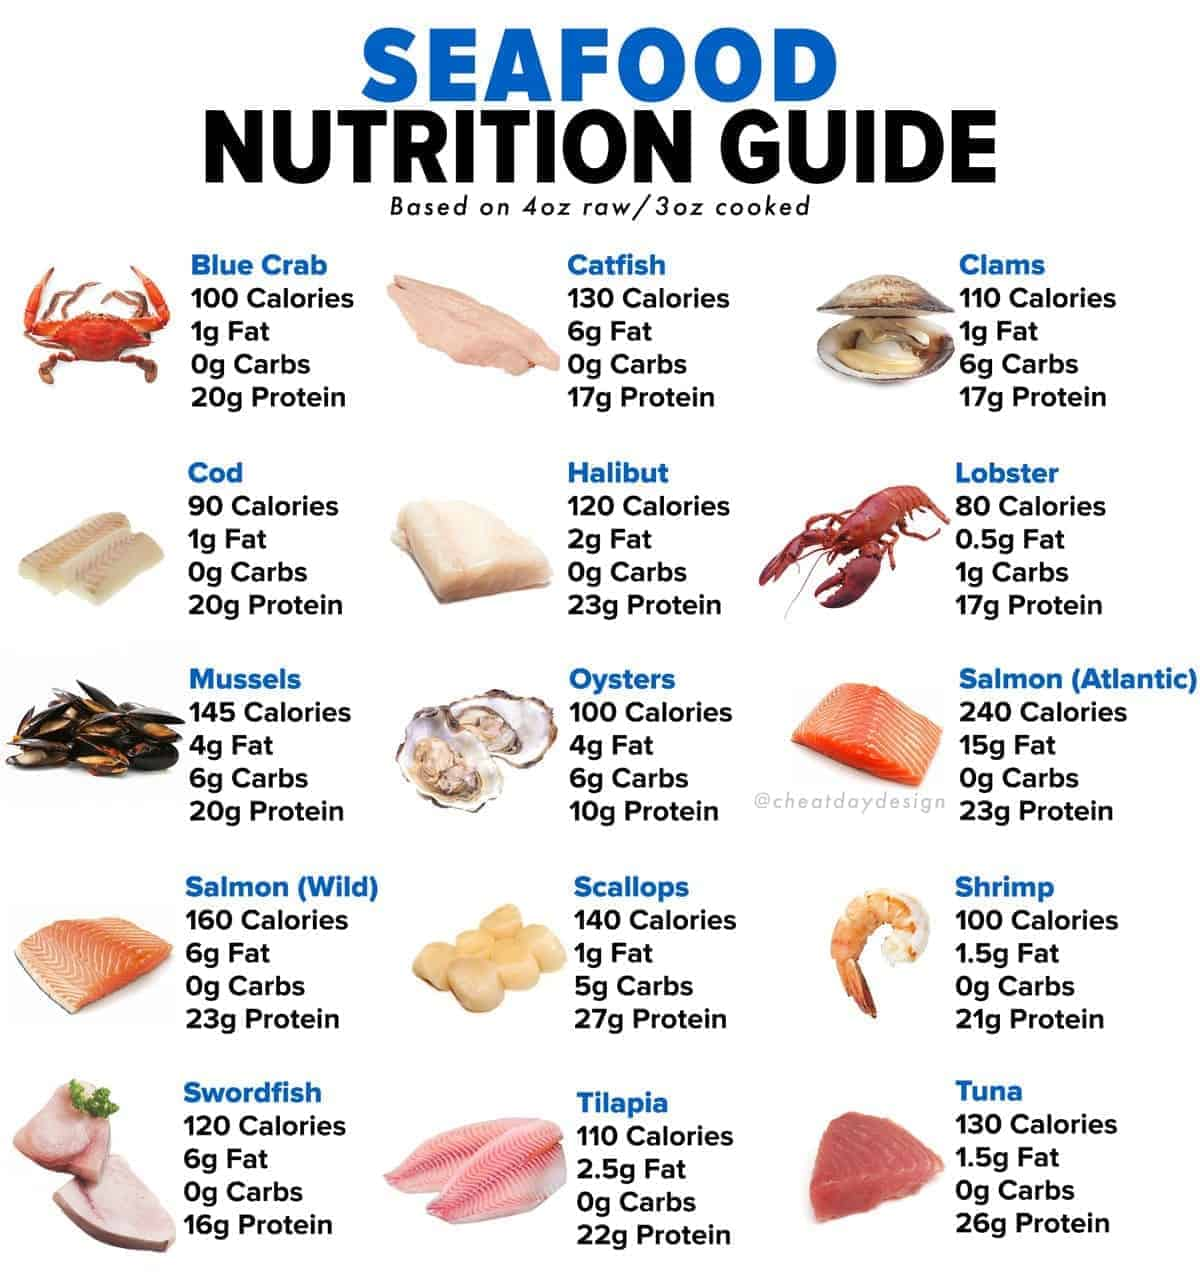 Seafood Nutrition Guide